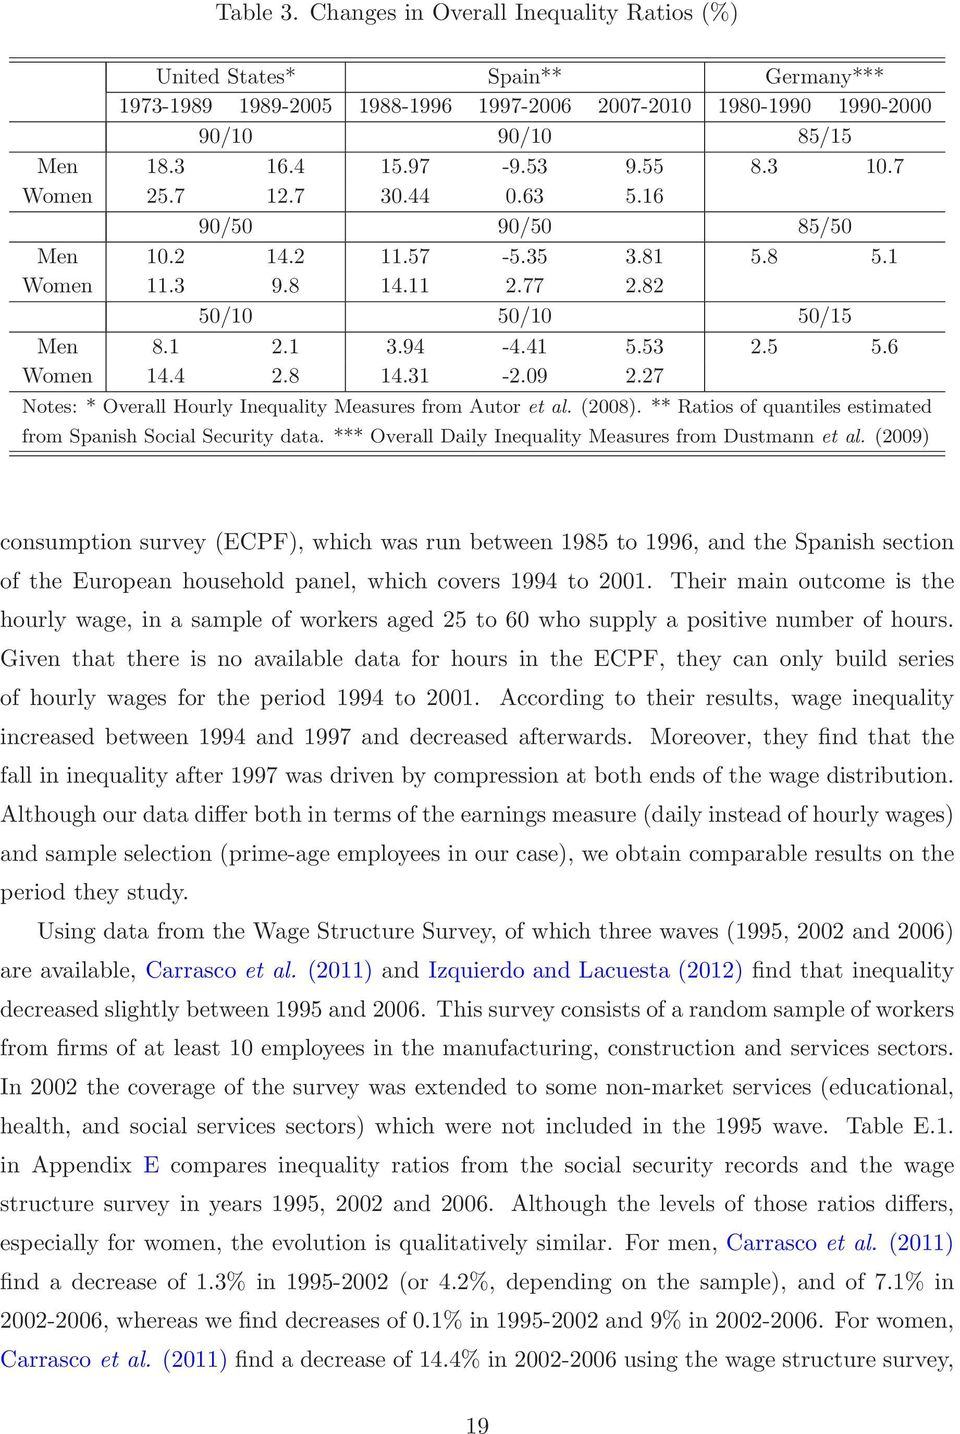 8 14.31-2.09 2.27 Notes: * Overall Hourly Inequality Measures from Autor et al. (2008). ** Ratios of quantiles estimated from Spanish Social Security data.